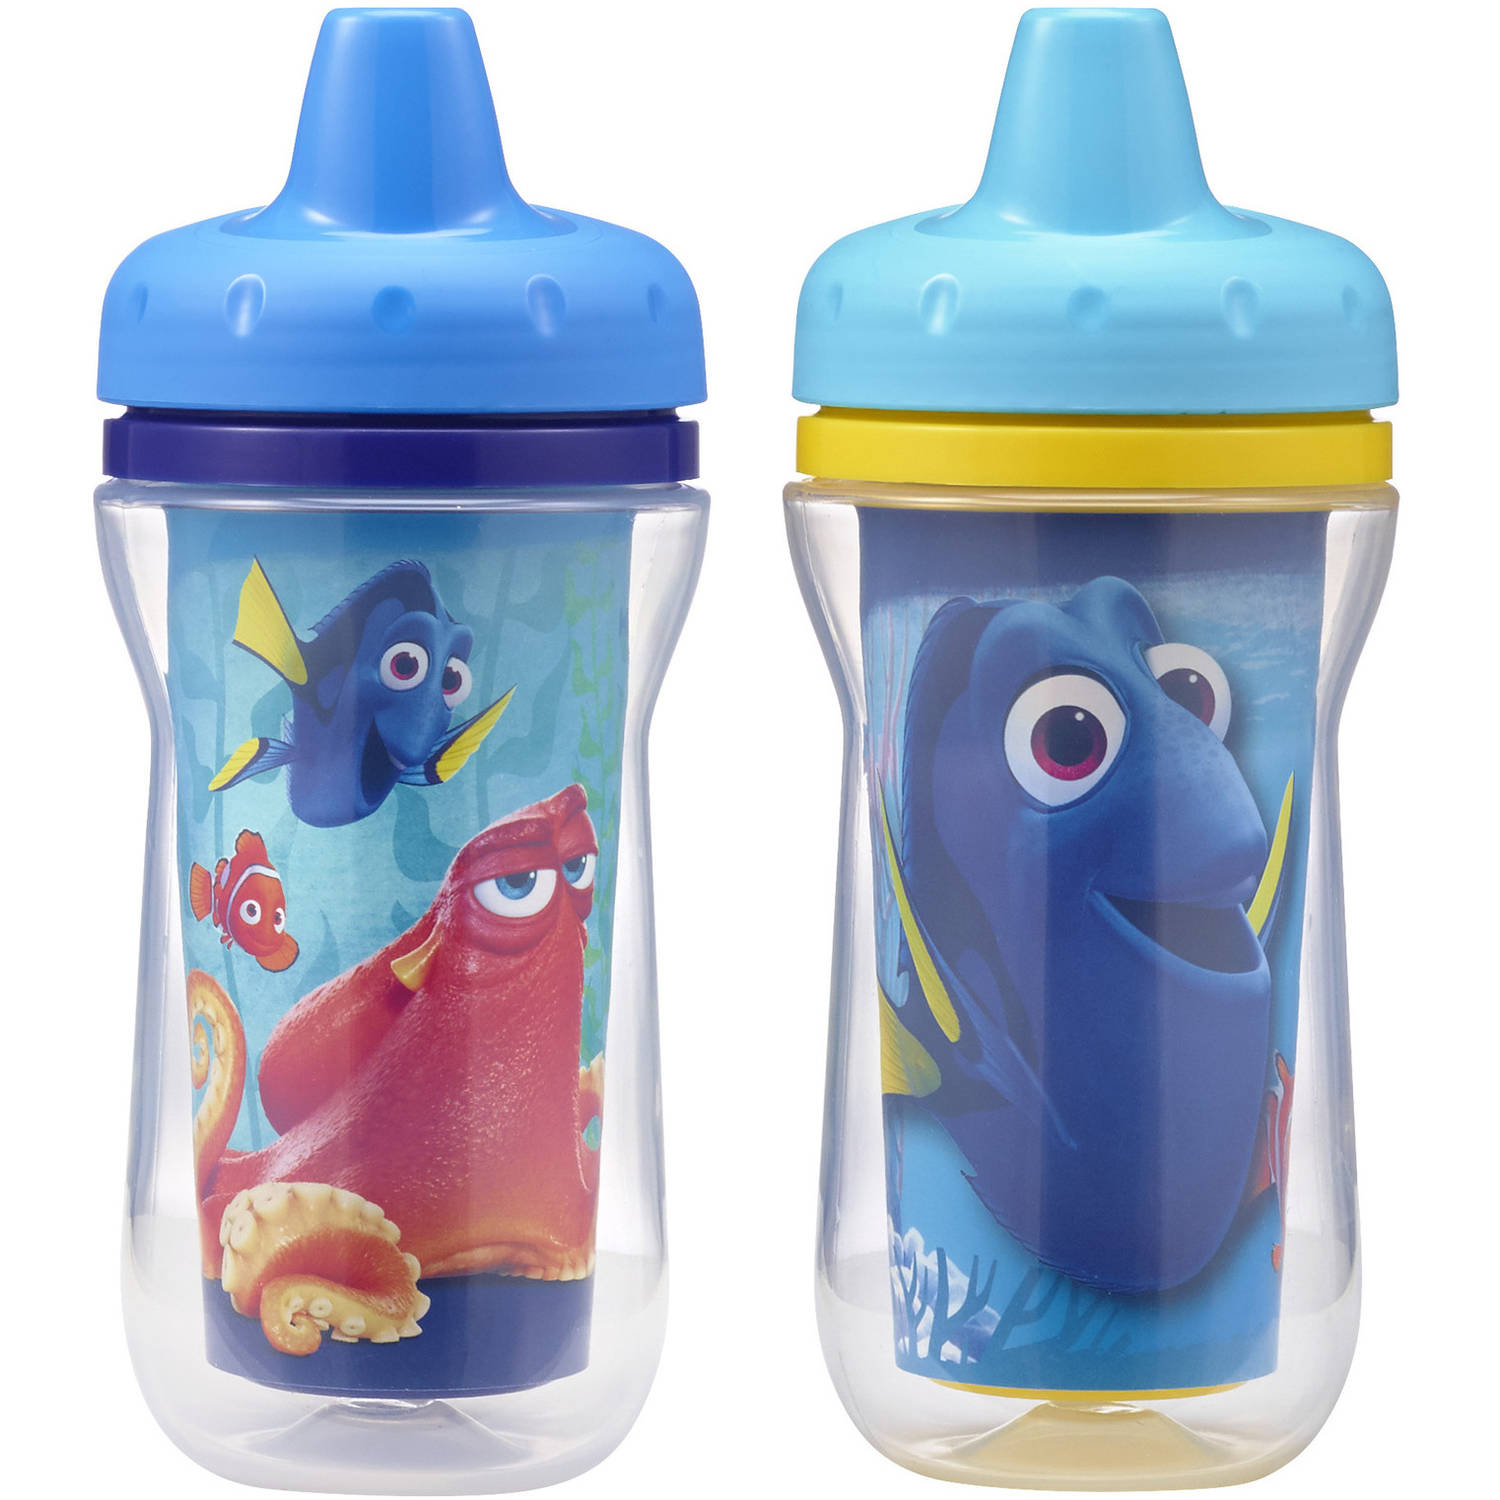 The First Years Disney/Pixar Finding Dory 9oz  Insulated Sippy Cup, 2 Pack